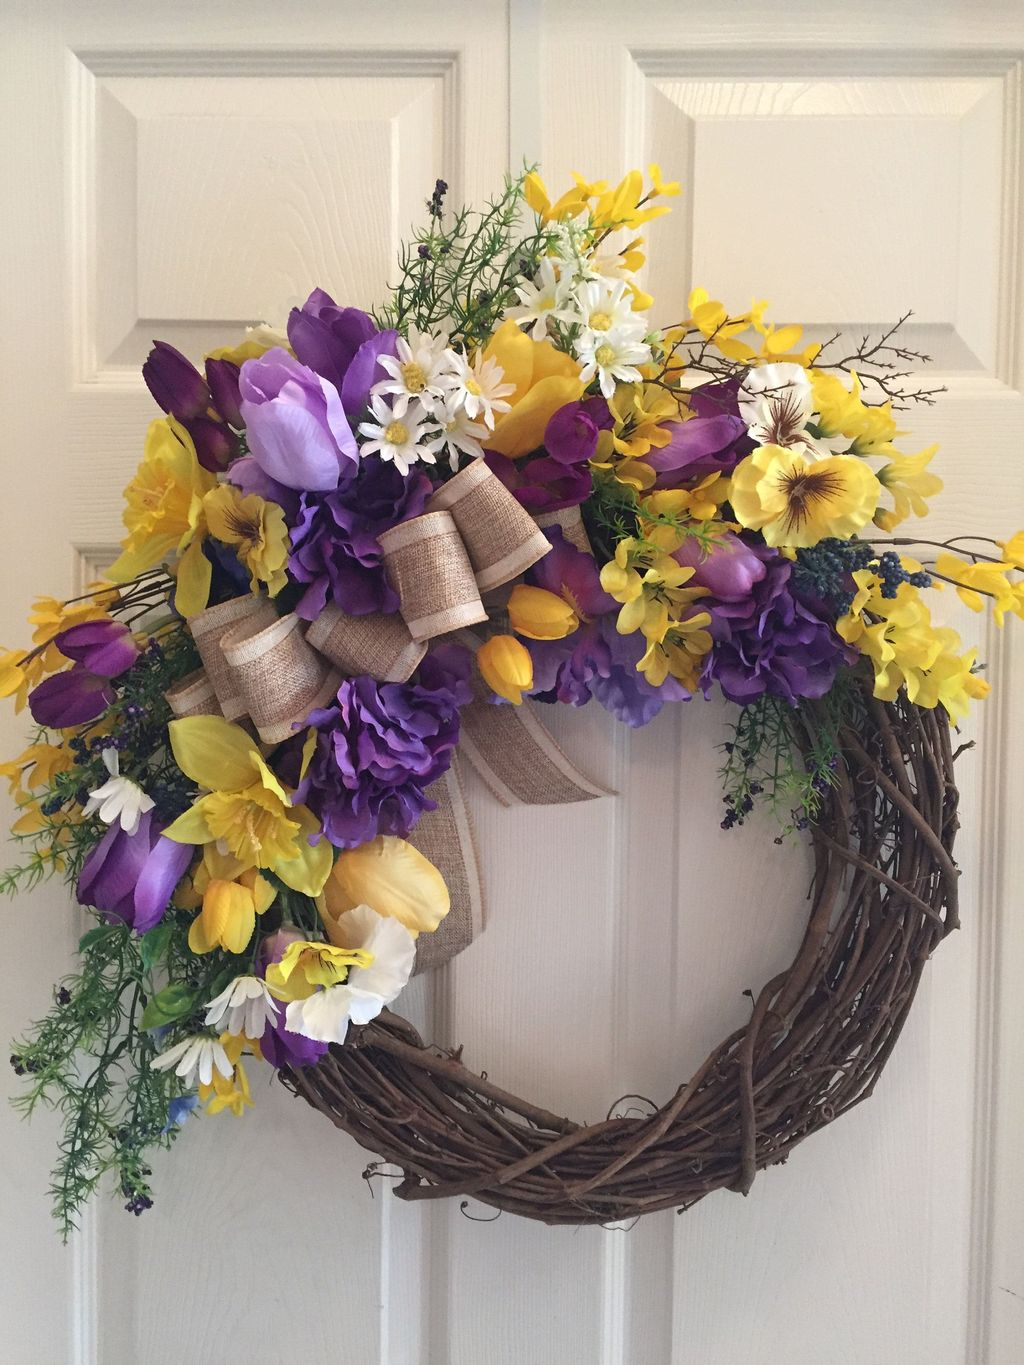 Brilliant Spring Door Wreaths Design Ideas 16